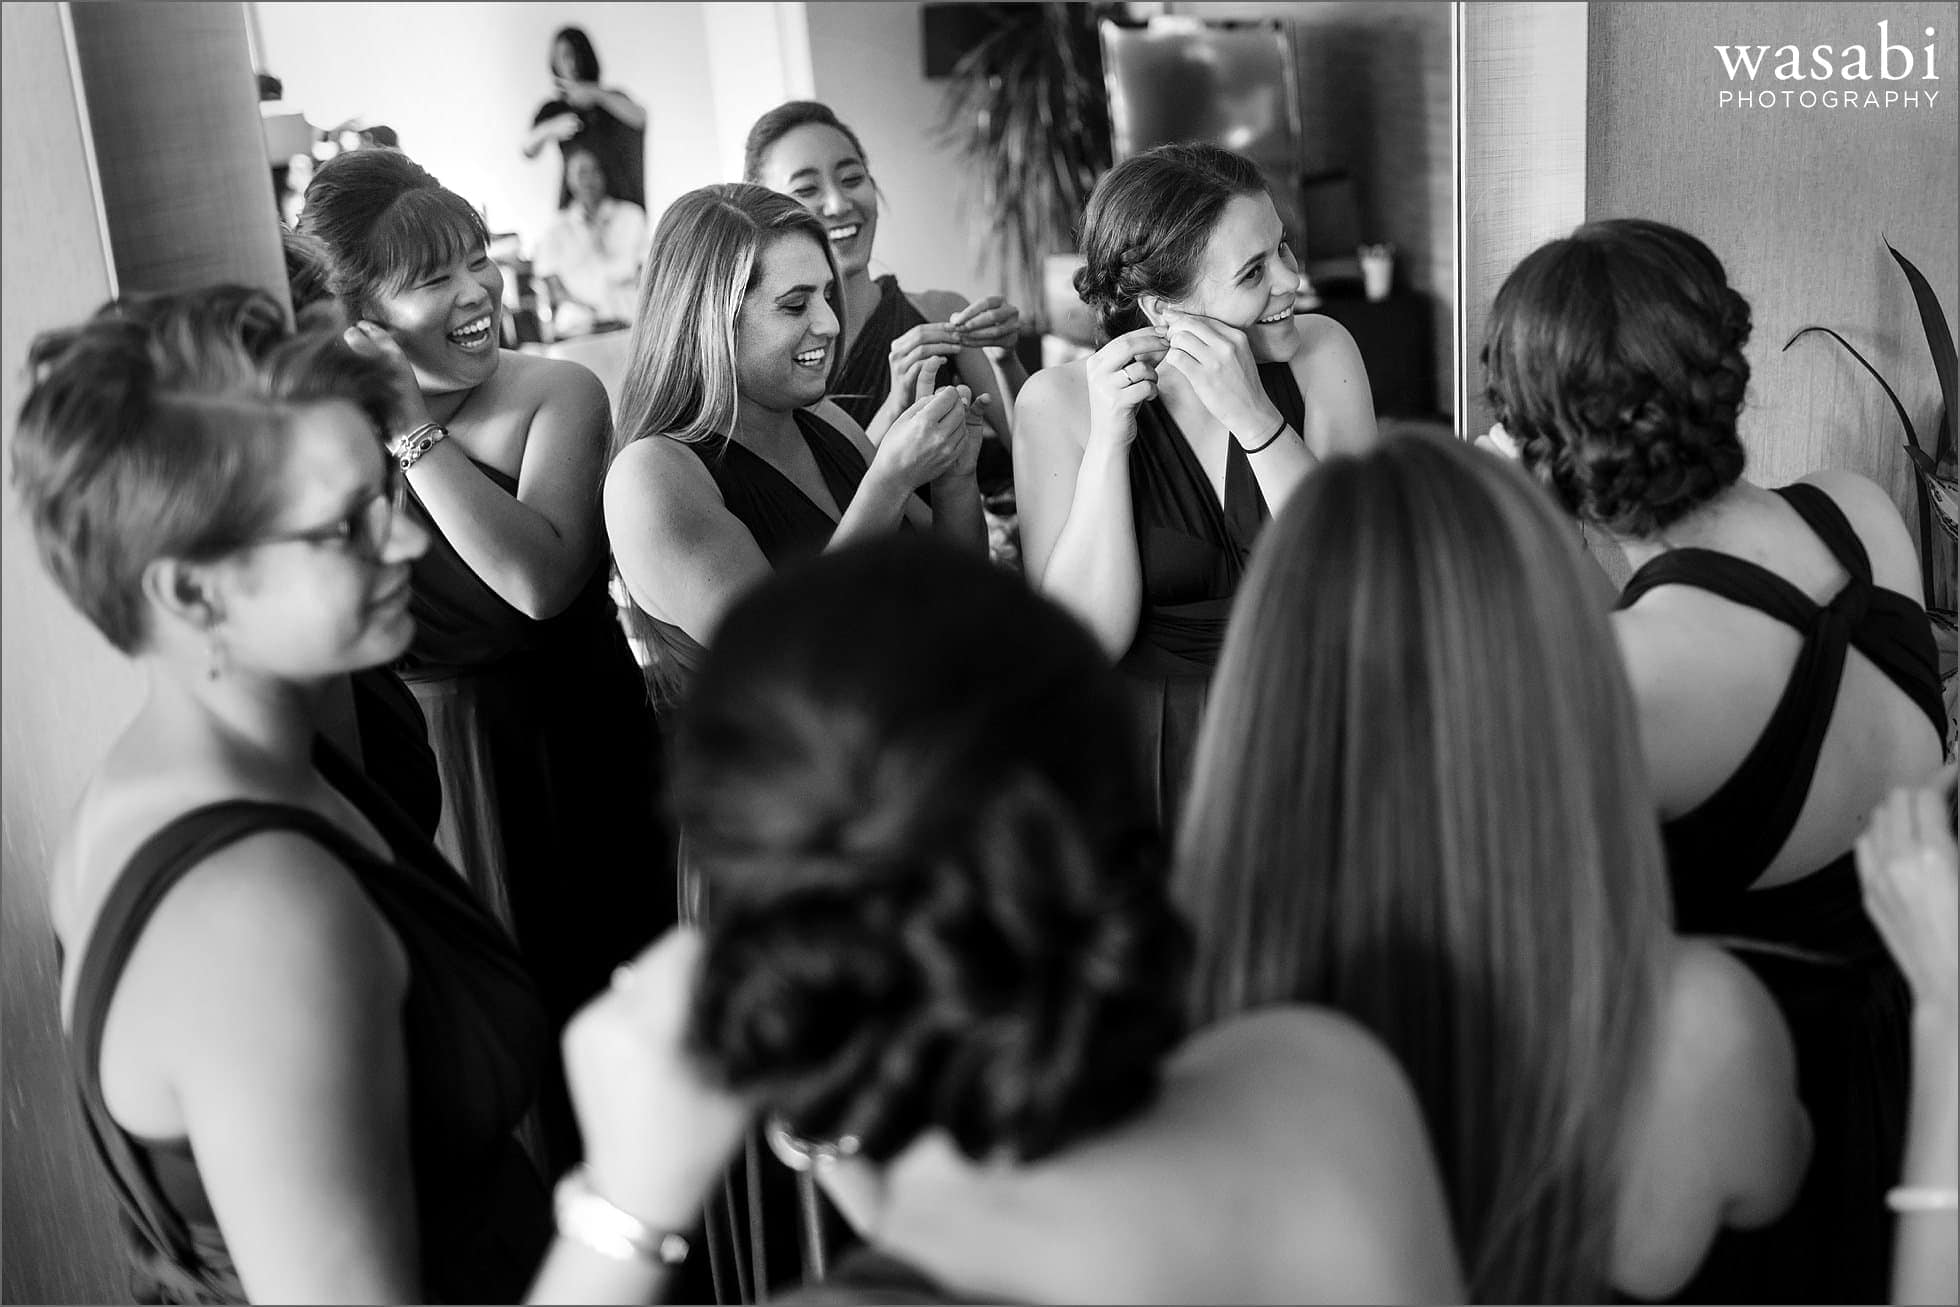 bridesmaids in a circle put on their earrings together while getting ready for a wedding at Sheraton Grand Hotel in Chicago